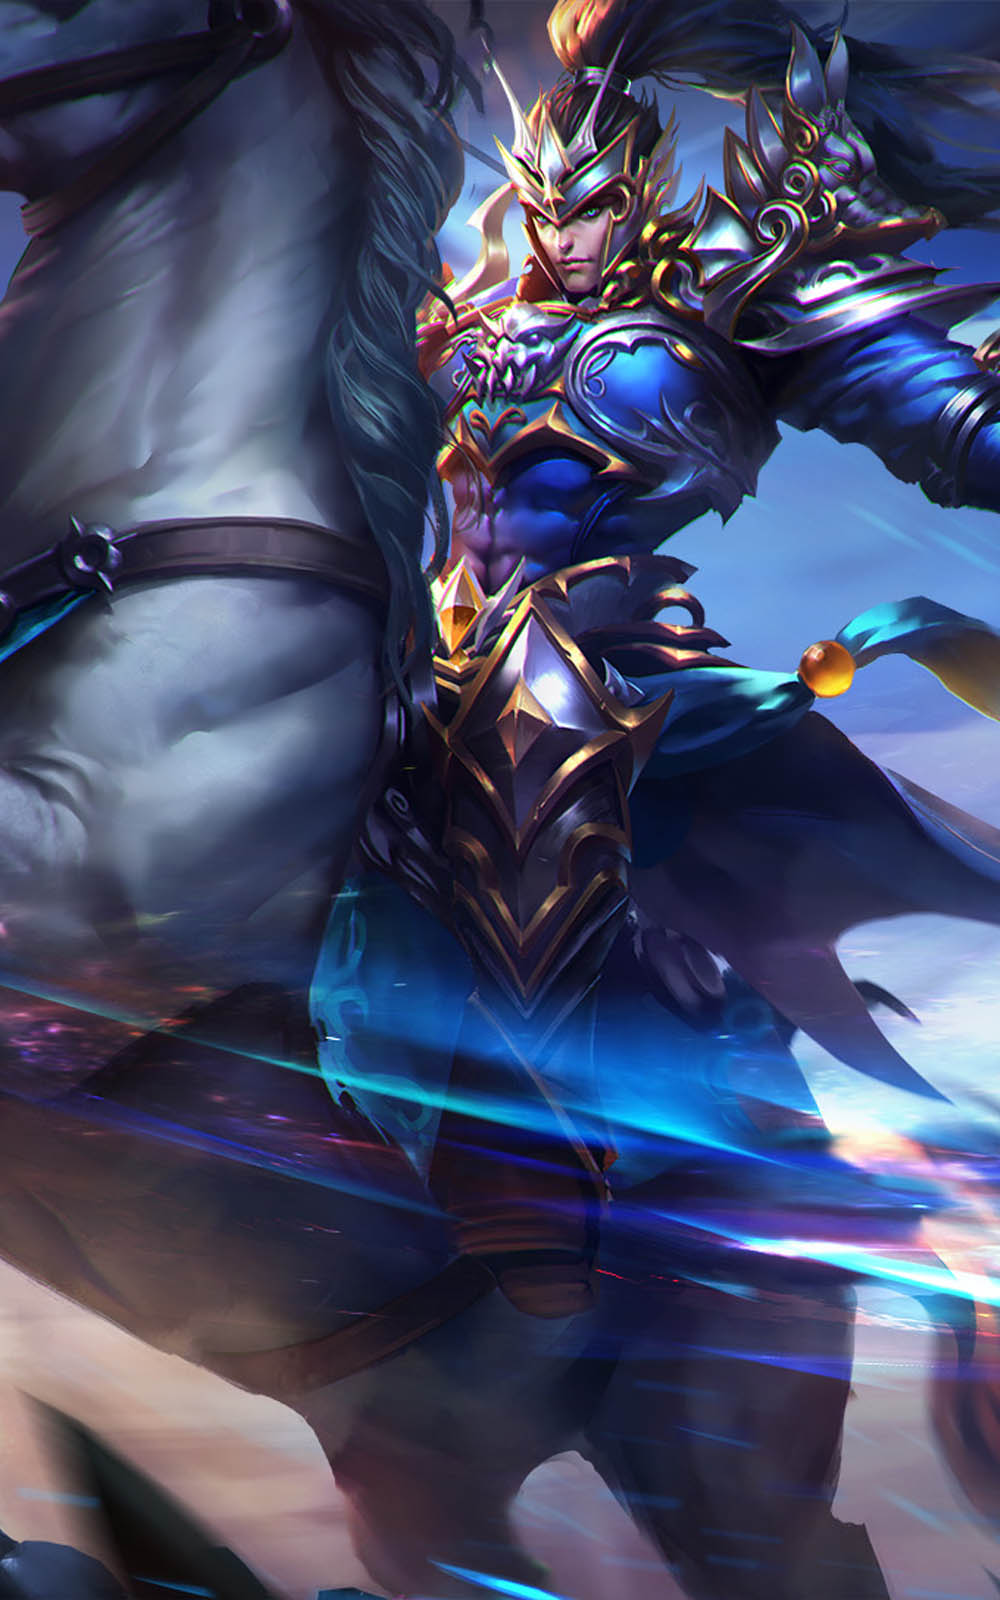 Download Zhao Yun Mobile Legends Artwork Free Pure 4K Ultra HD Mobile Wallpaper